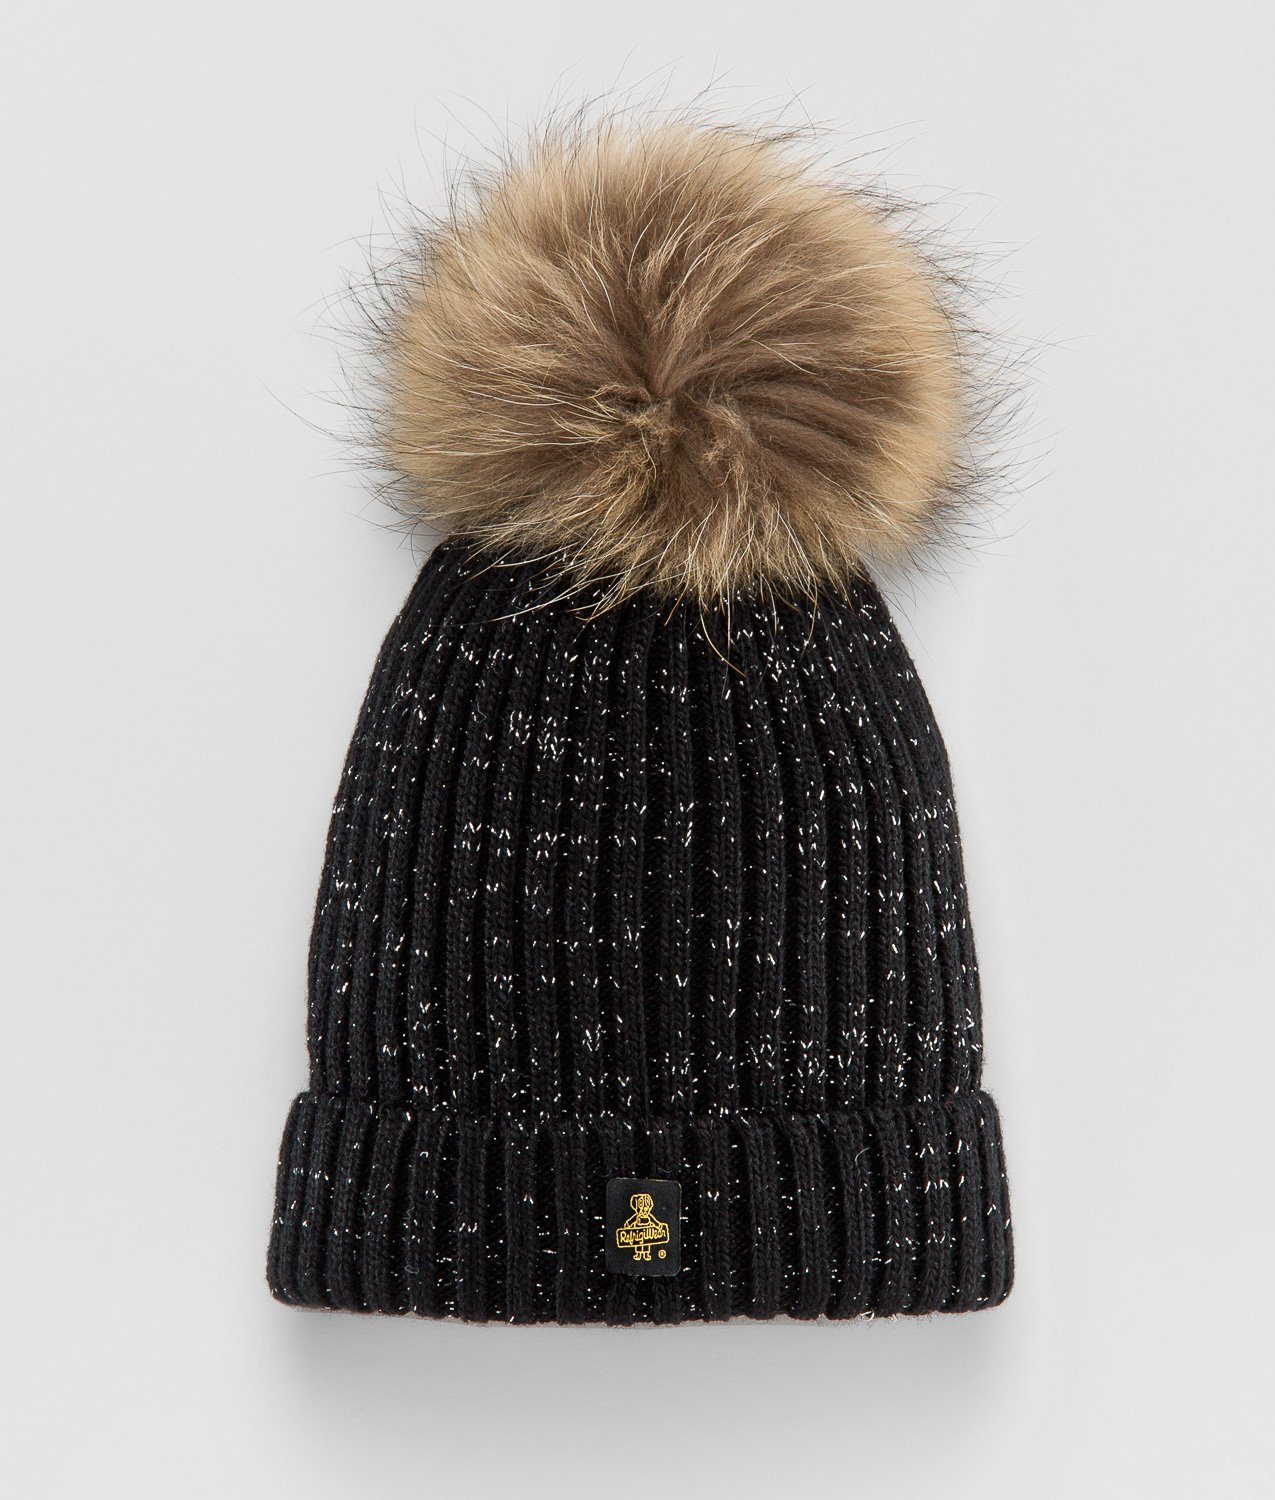 JR SNOW FLAKE HAT